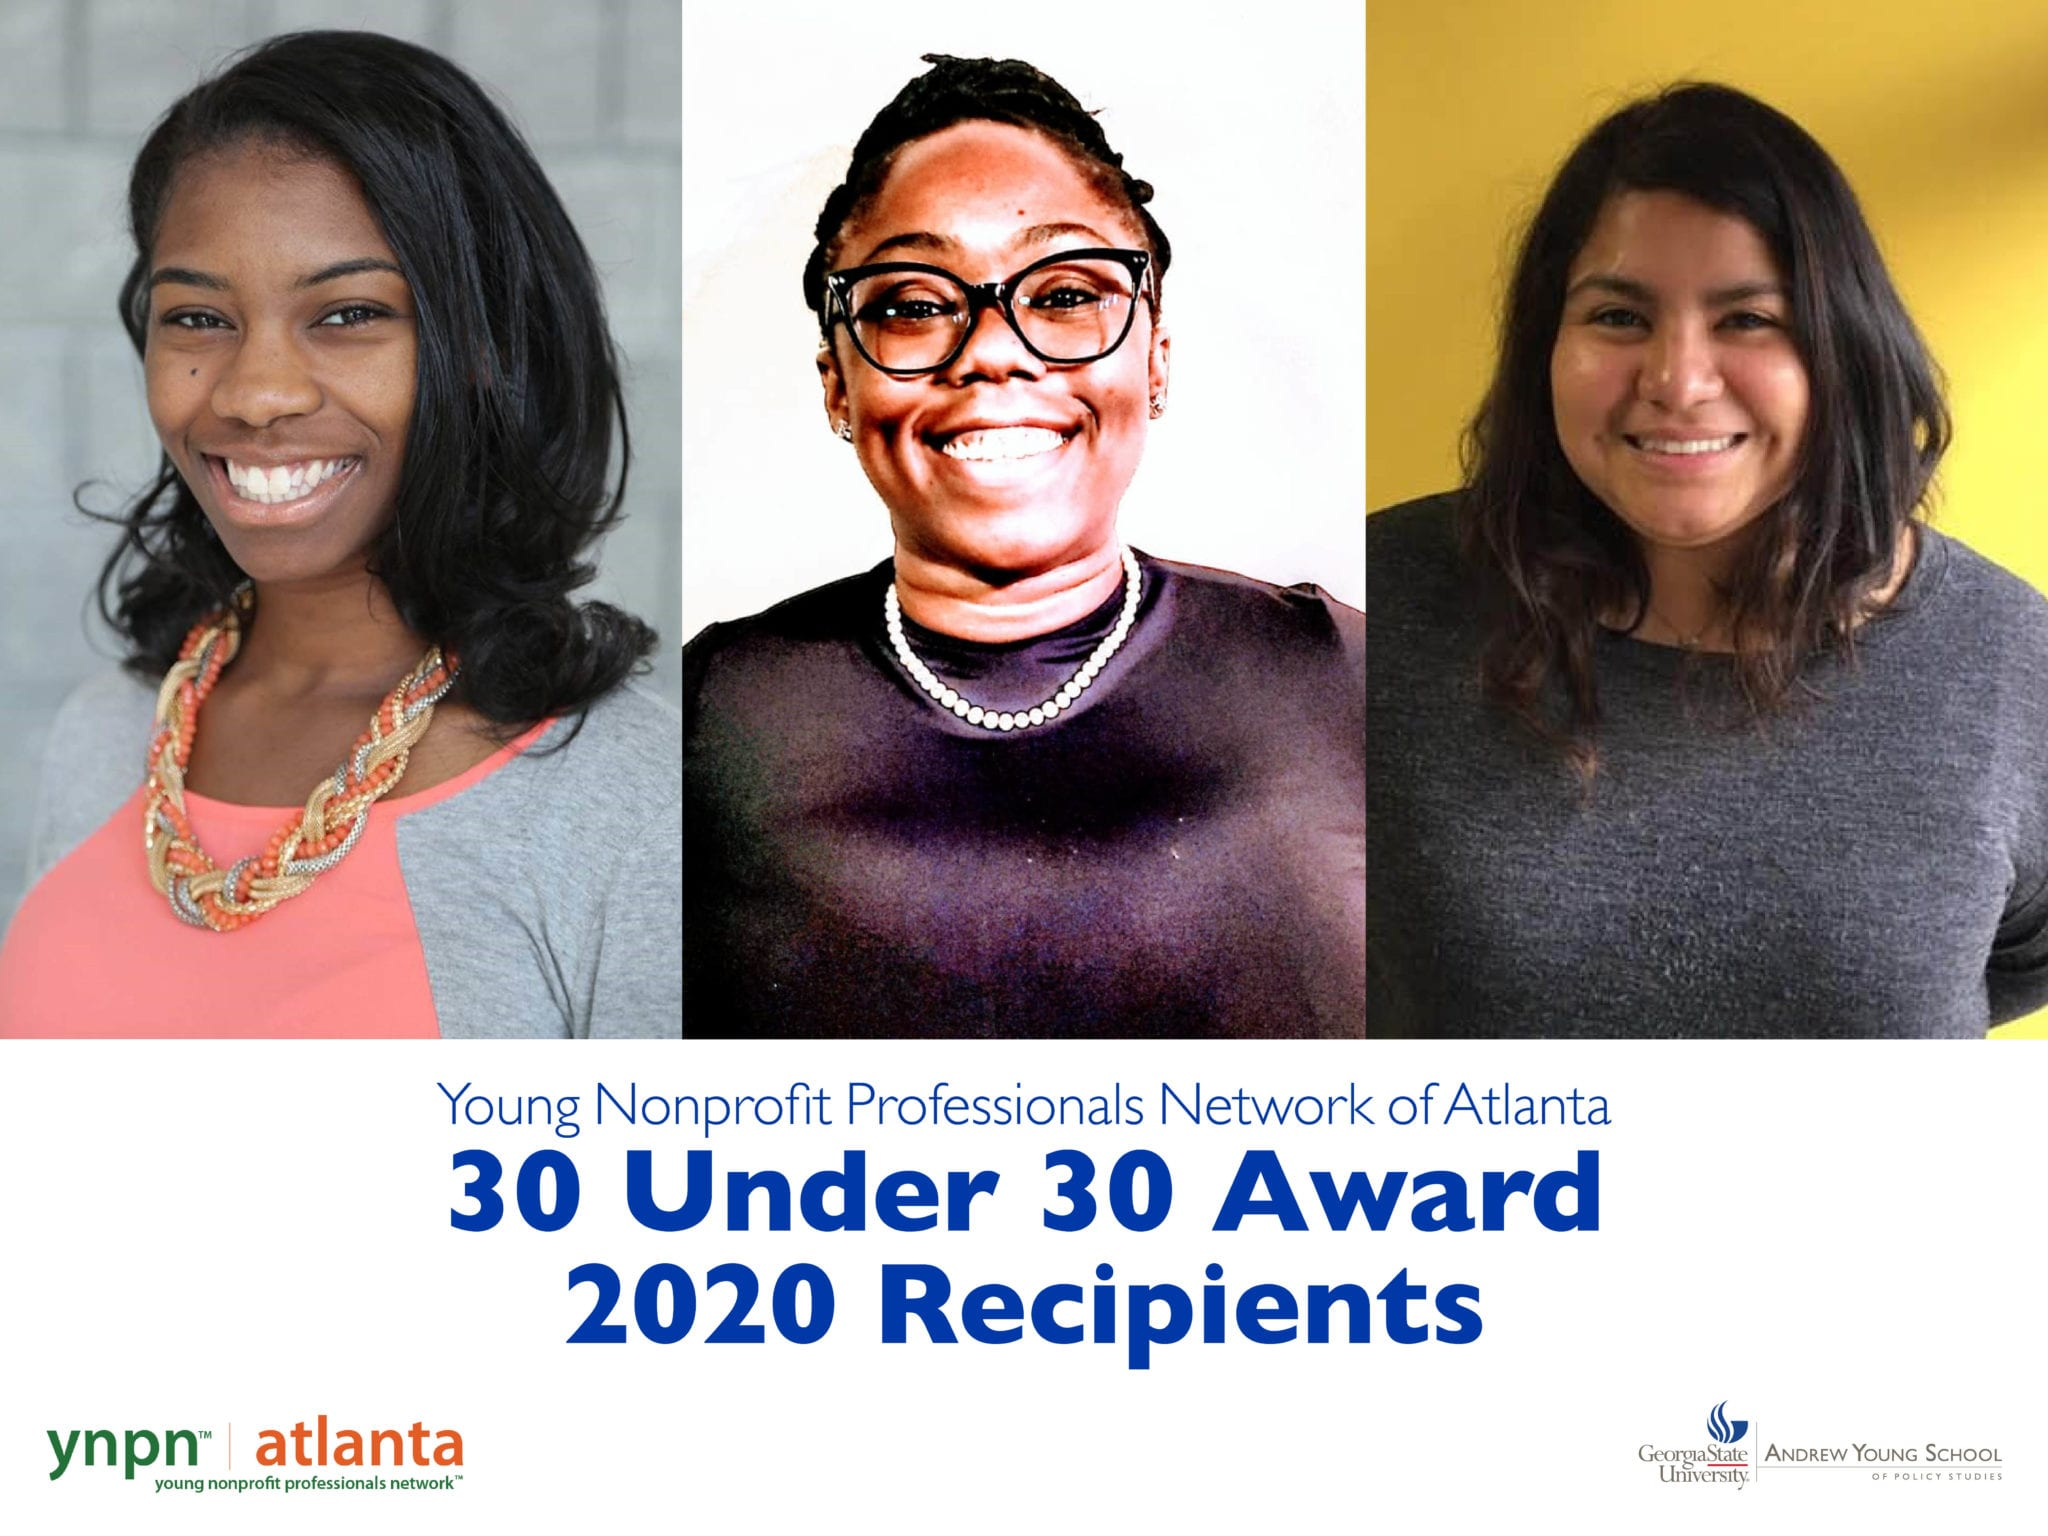 2020 Young Nonprofit Professionals 30 Under 30 Recipients from the Andrew Young School